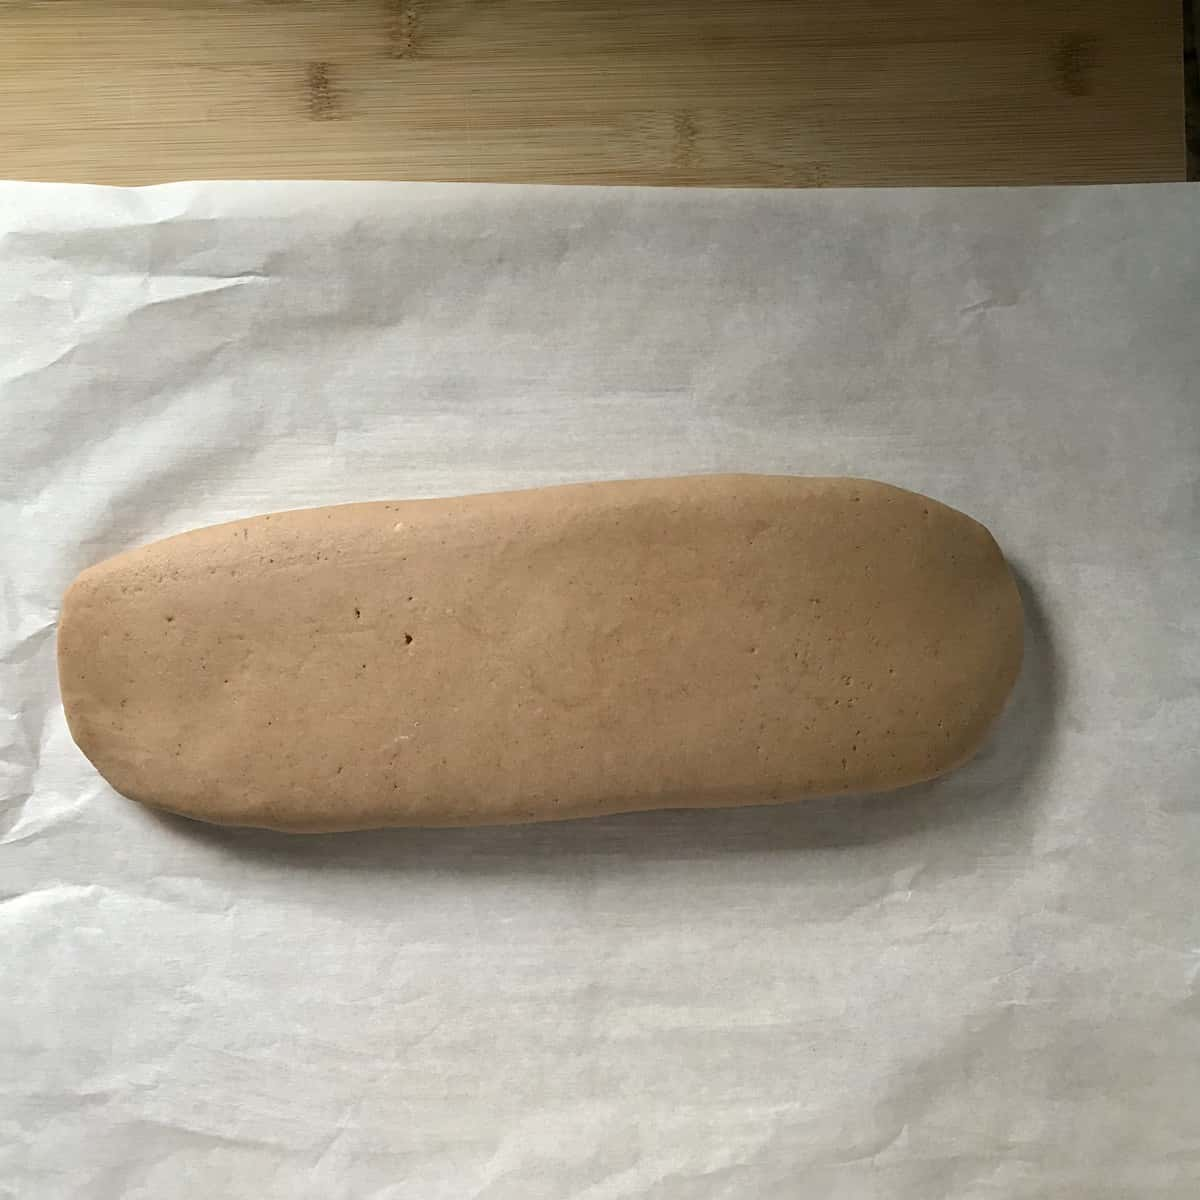 Biscotti log on parchment paper.